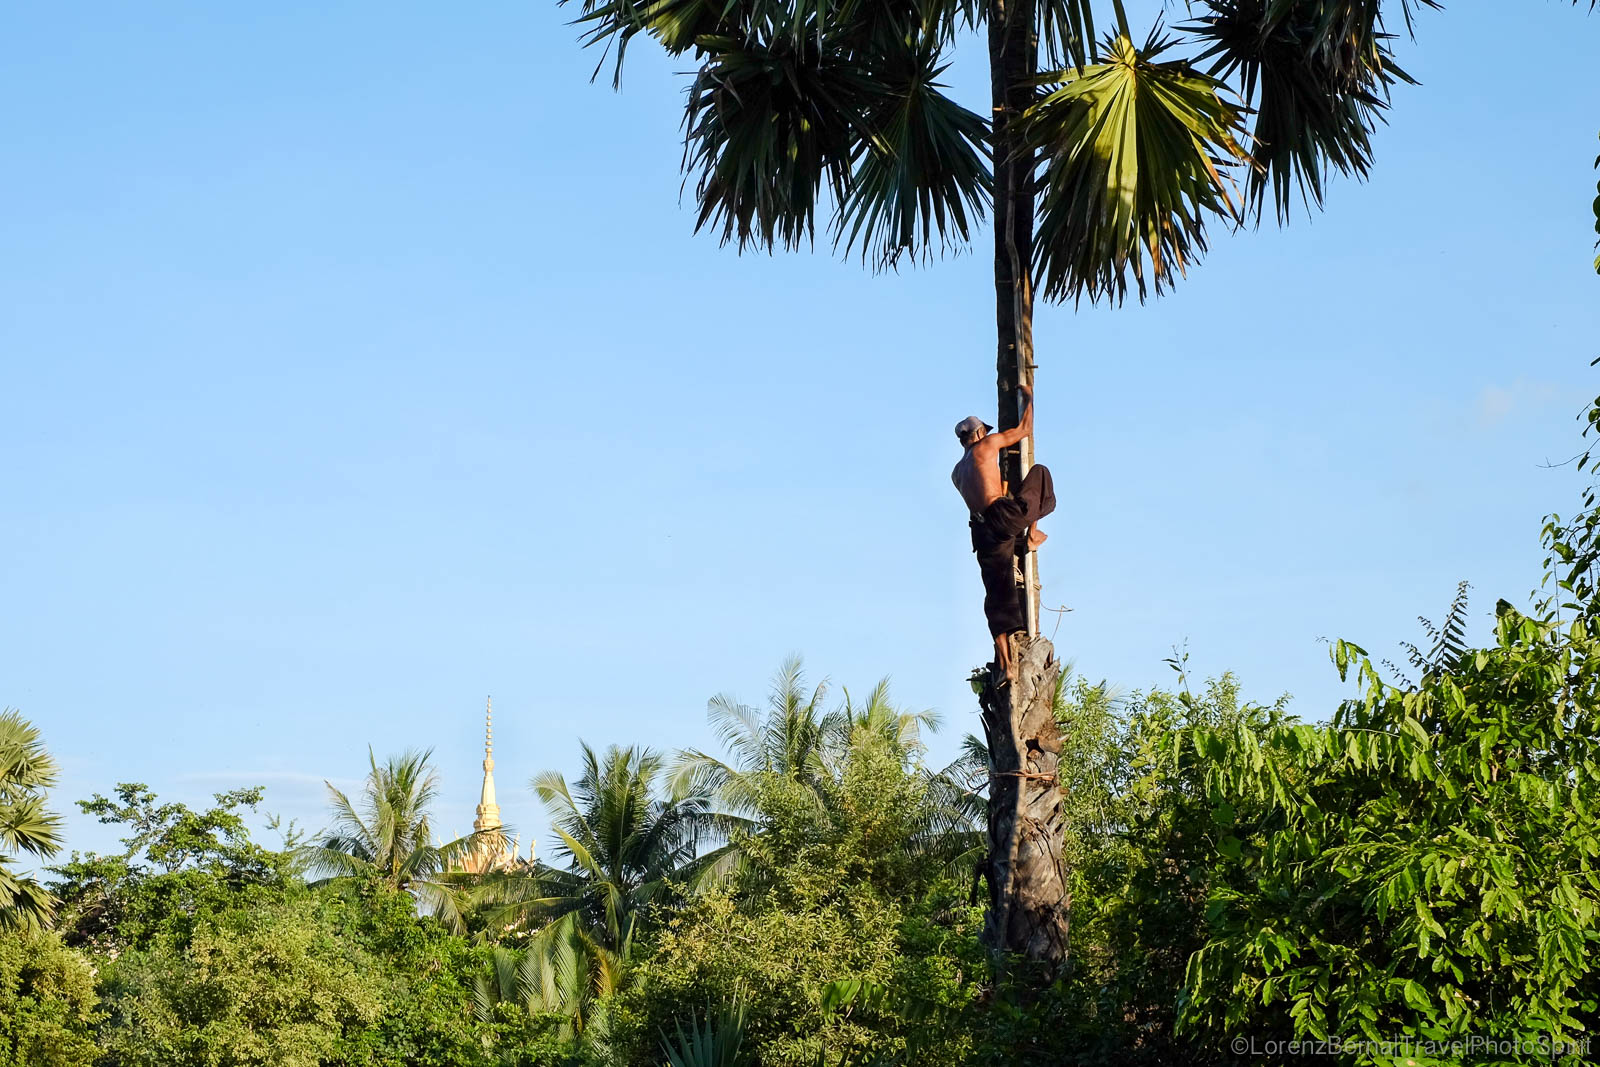 Man on a palm to collect the sugar in Kampot Countryside, Cambodia